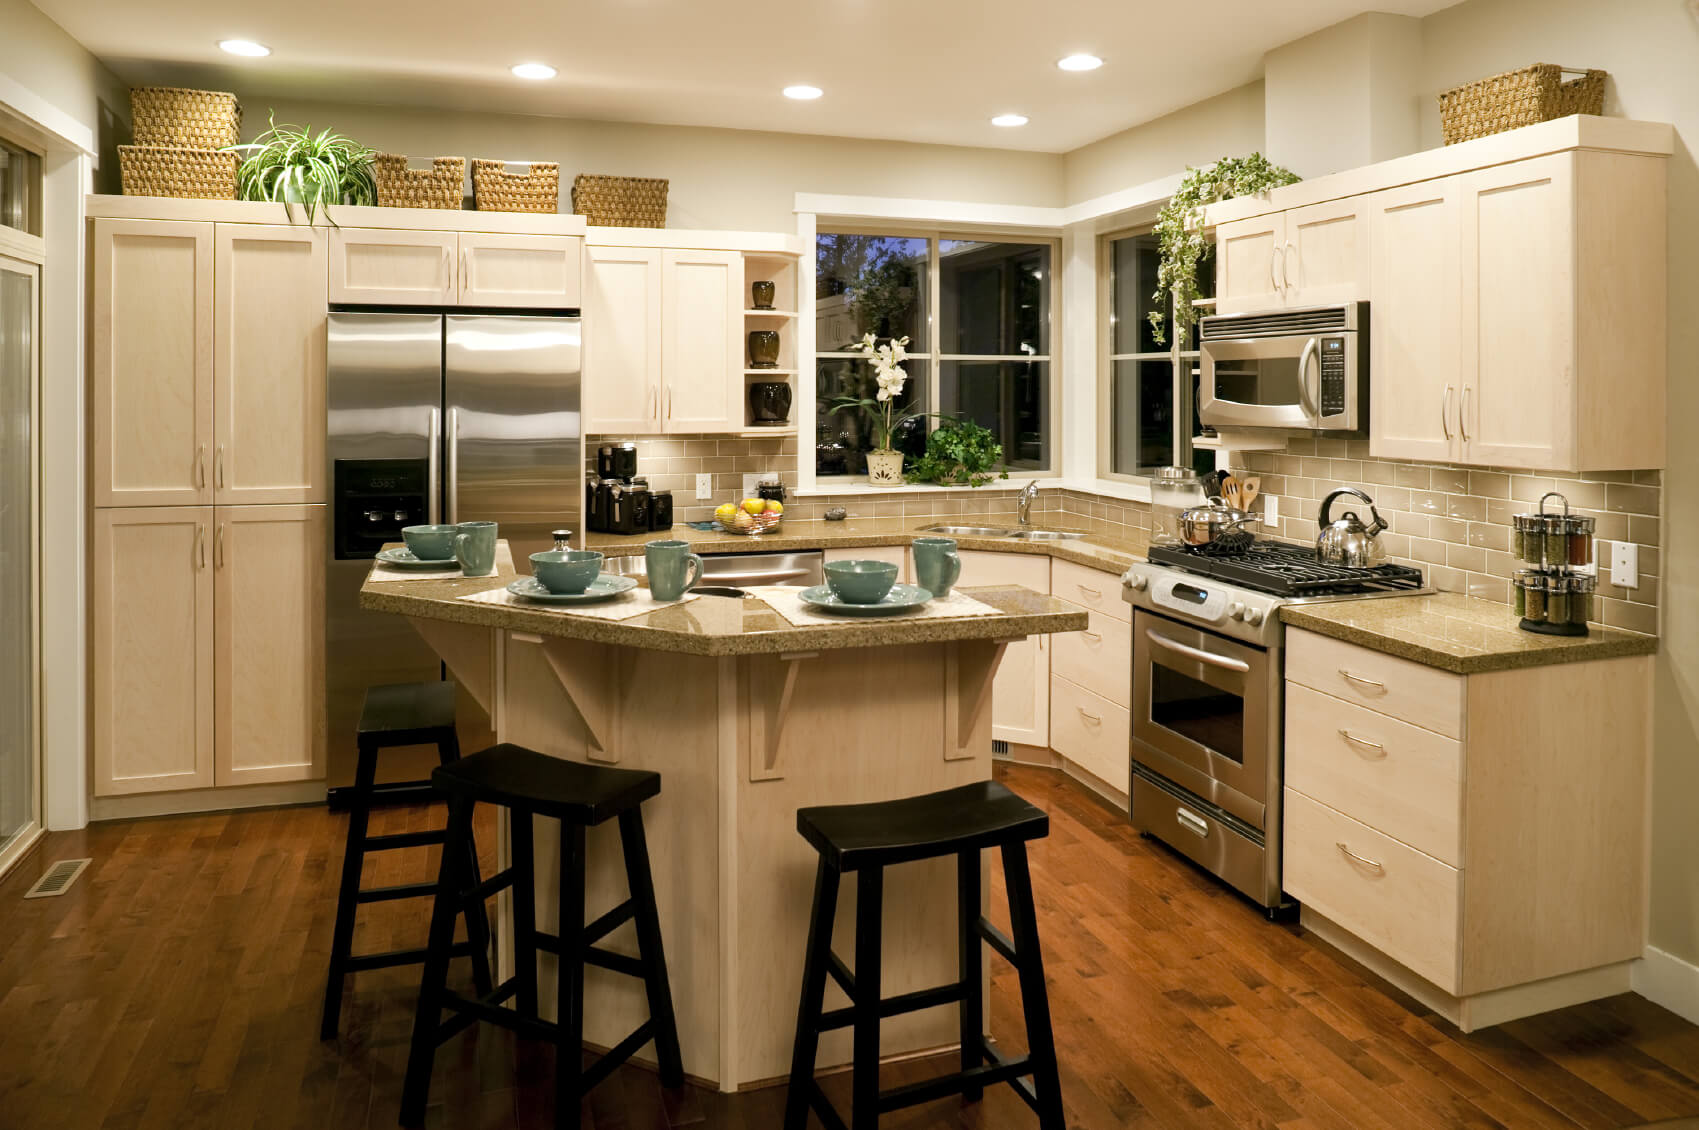 Great Kitchen Designs. Modern Kitchen Home Interior 124  Great Design and Ideas with Cabinets Islands